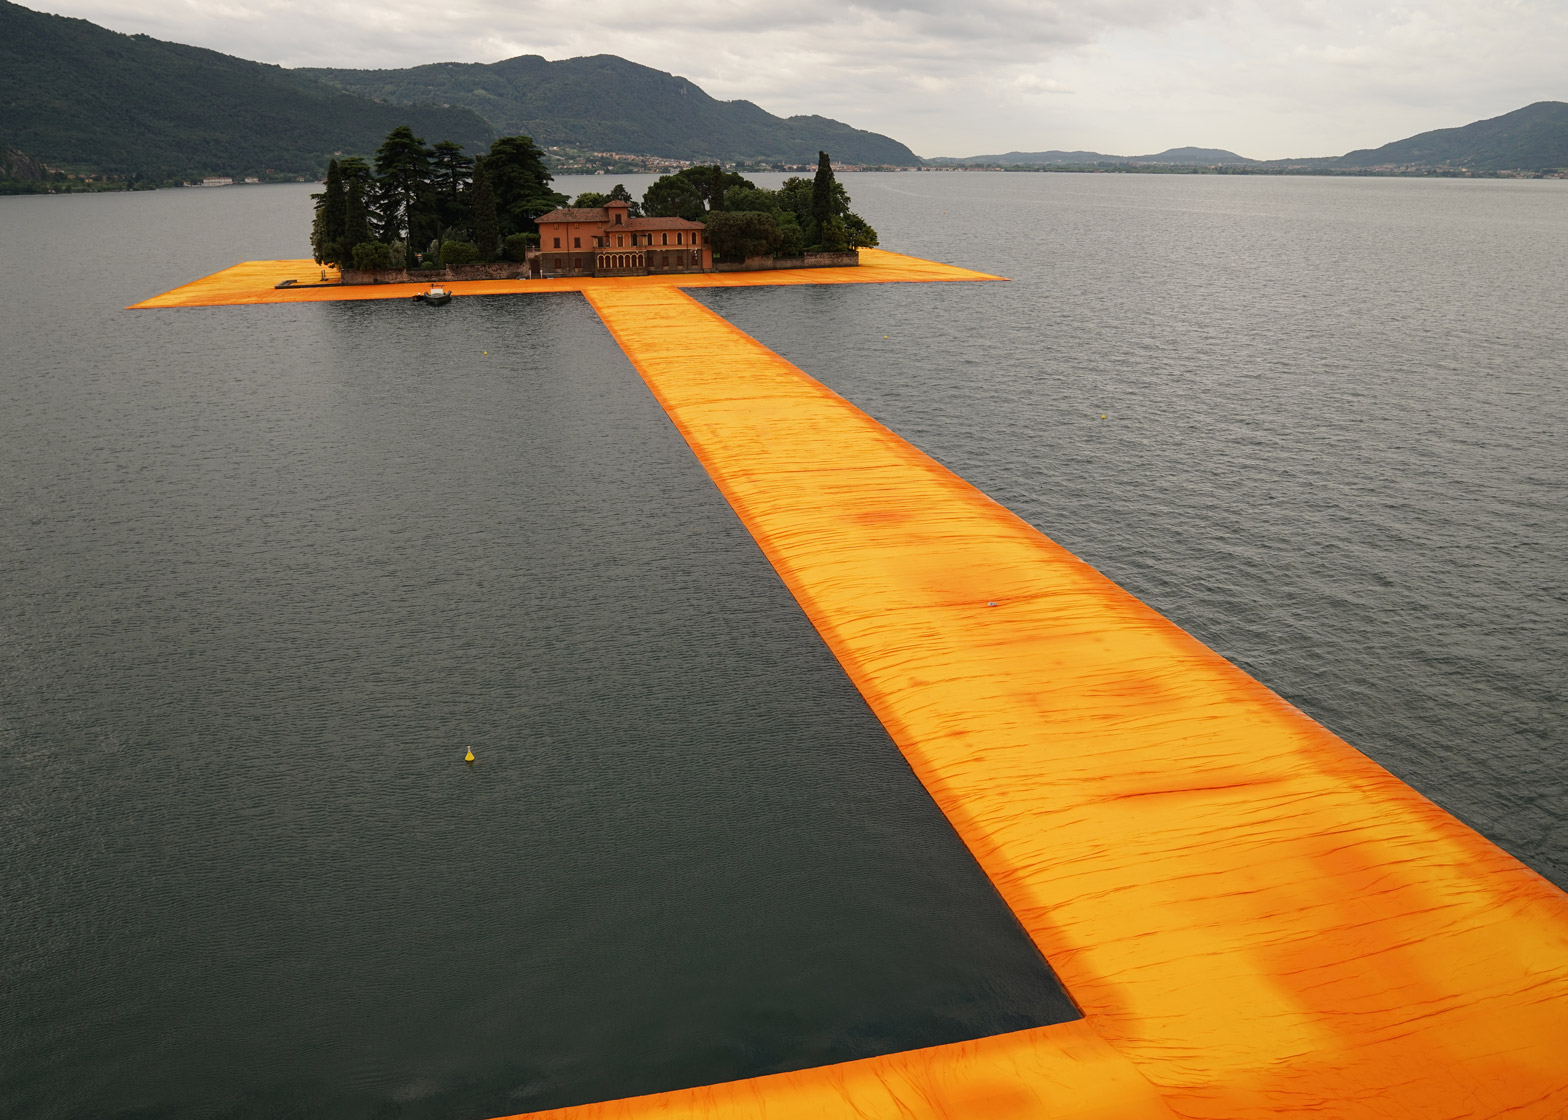 floating-piers-christo-lake-iseo-italy-june-2016-orange-yellow-fabric-birds-eye_dezeen_1568_6